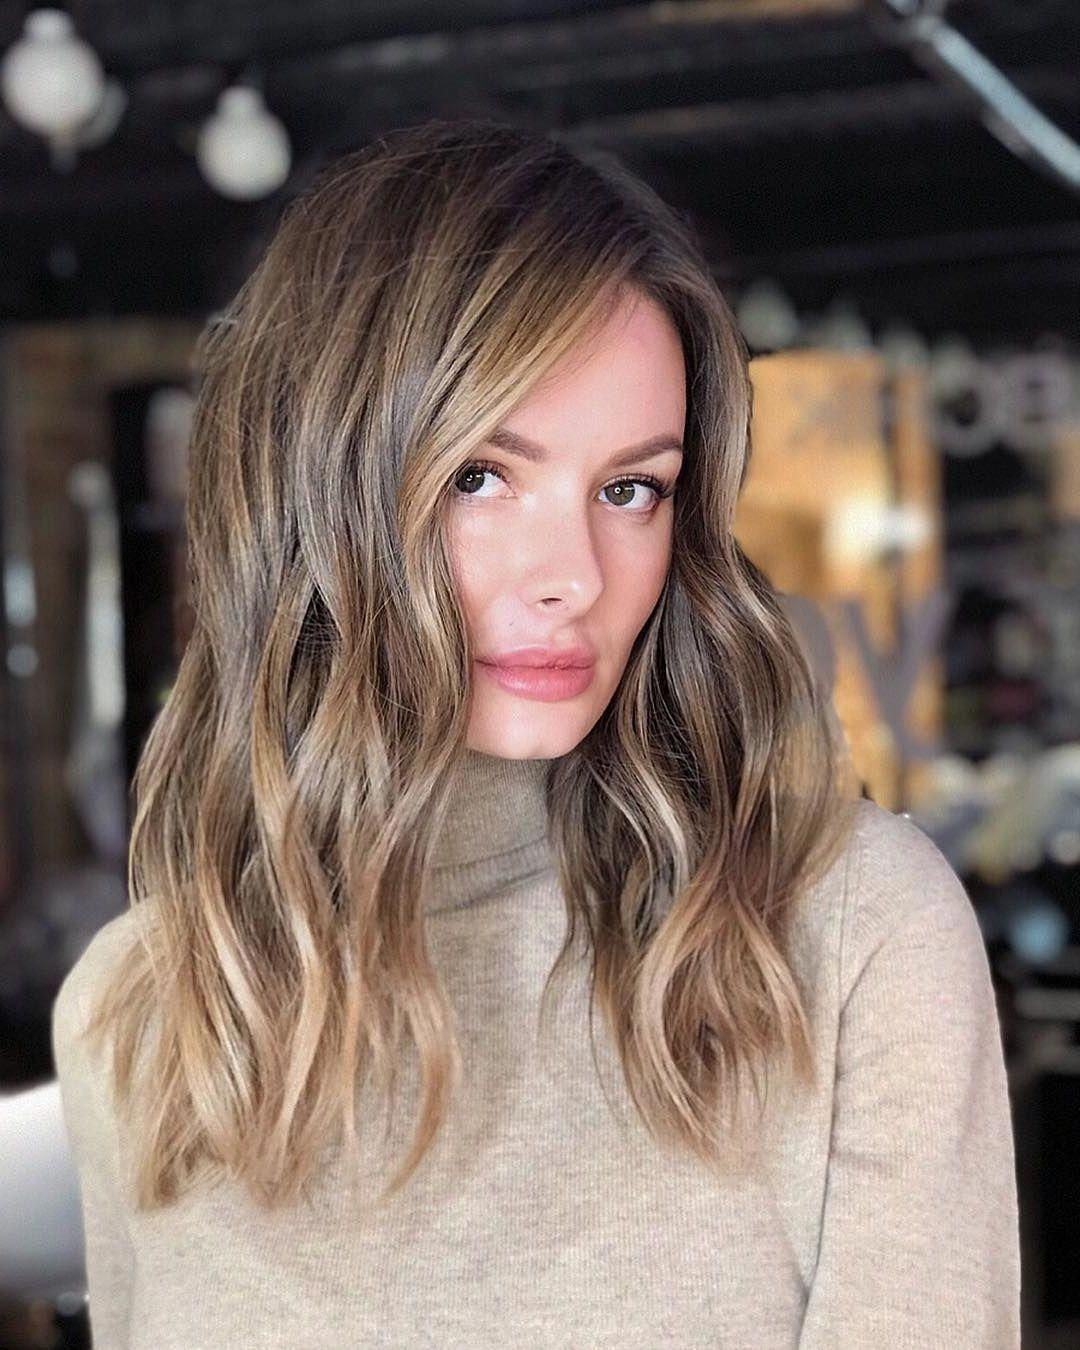 50 Natural Blonde Highlights To Do At Home, Do natural blondes really have more fun? Whether channeling a platinum shade à la Monroe or our most recent color crush, ash blonde, we're findin..., Blonde #blondeombre #naturalashblonde 50 Natural Blonde Highlights To Do At Home, Do natural blondes really have more fun? Whether channeling a platinum shade à la Monroe or our most recent color crush, ash blonde, we're findin..., Blonde #blondeombre #naturalashblonde 50 Natural Blonde Highlights T #ashblondebalayage